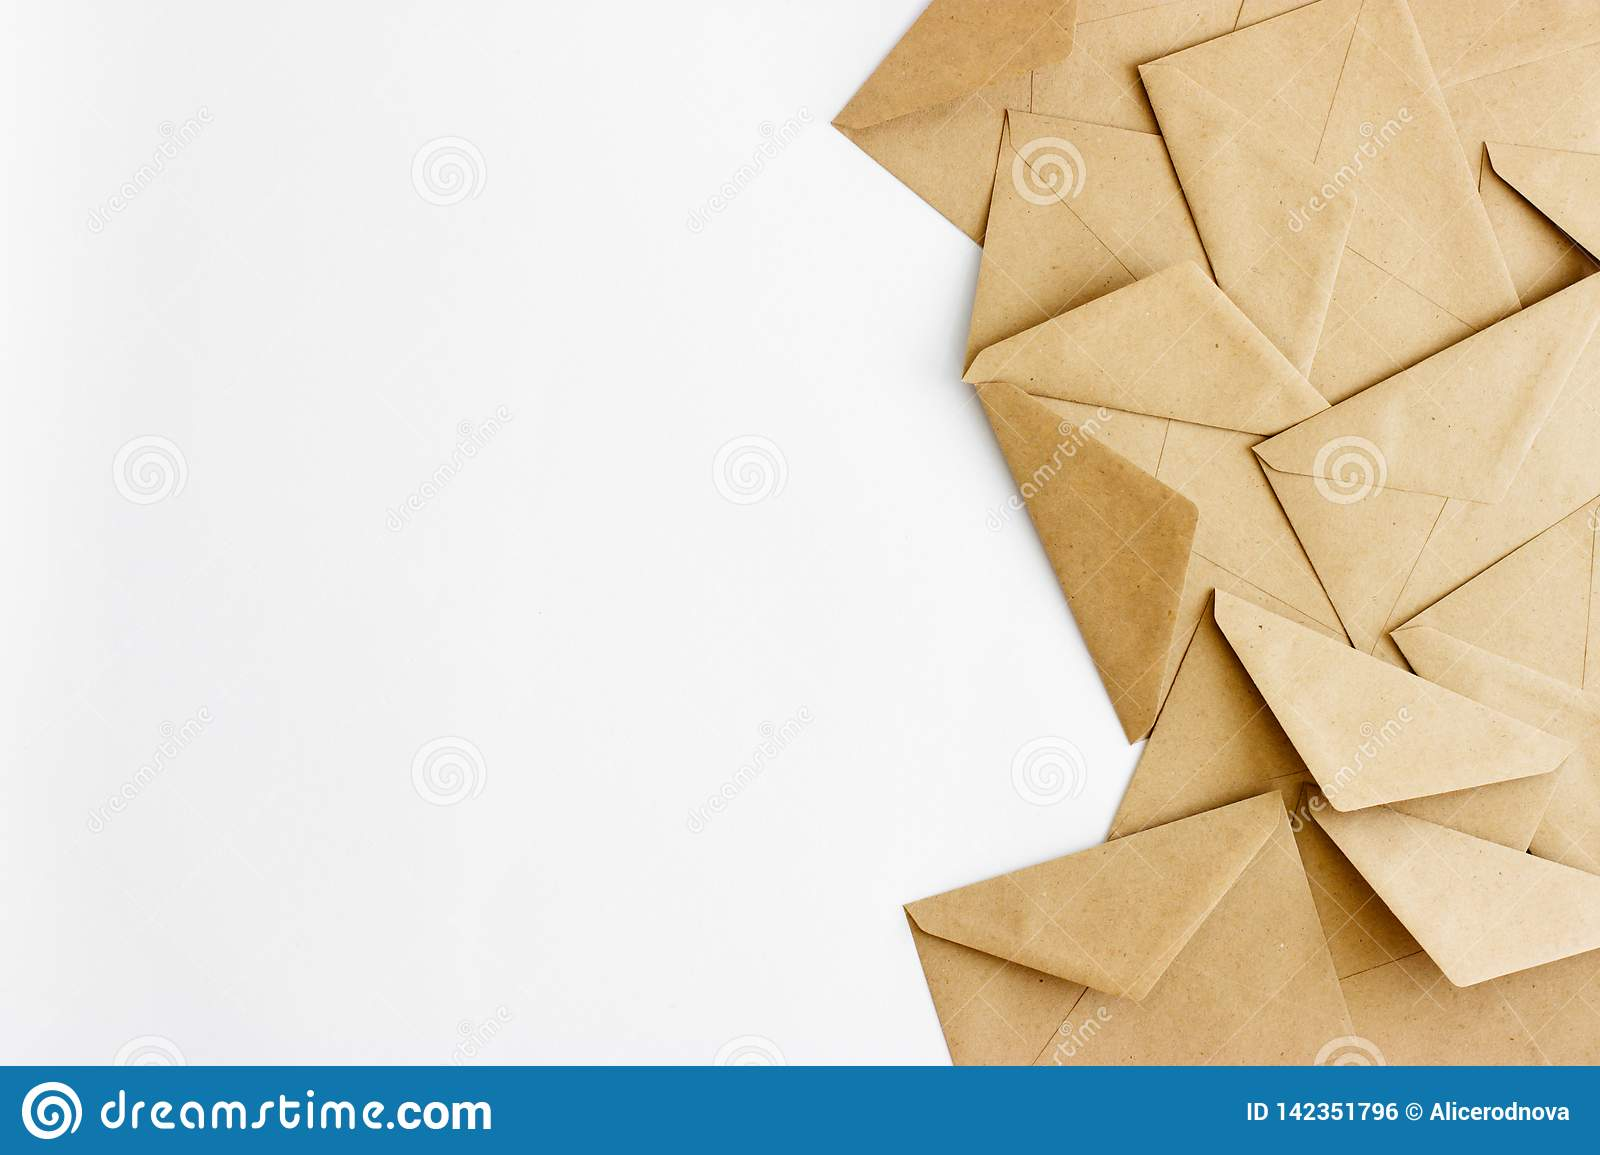 Kraft envelopes on a white background with space for text or design.